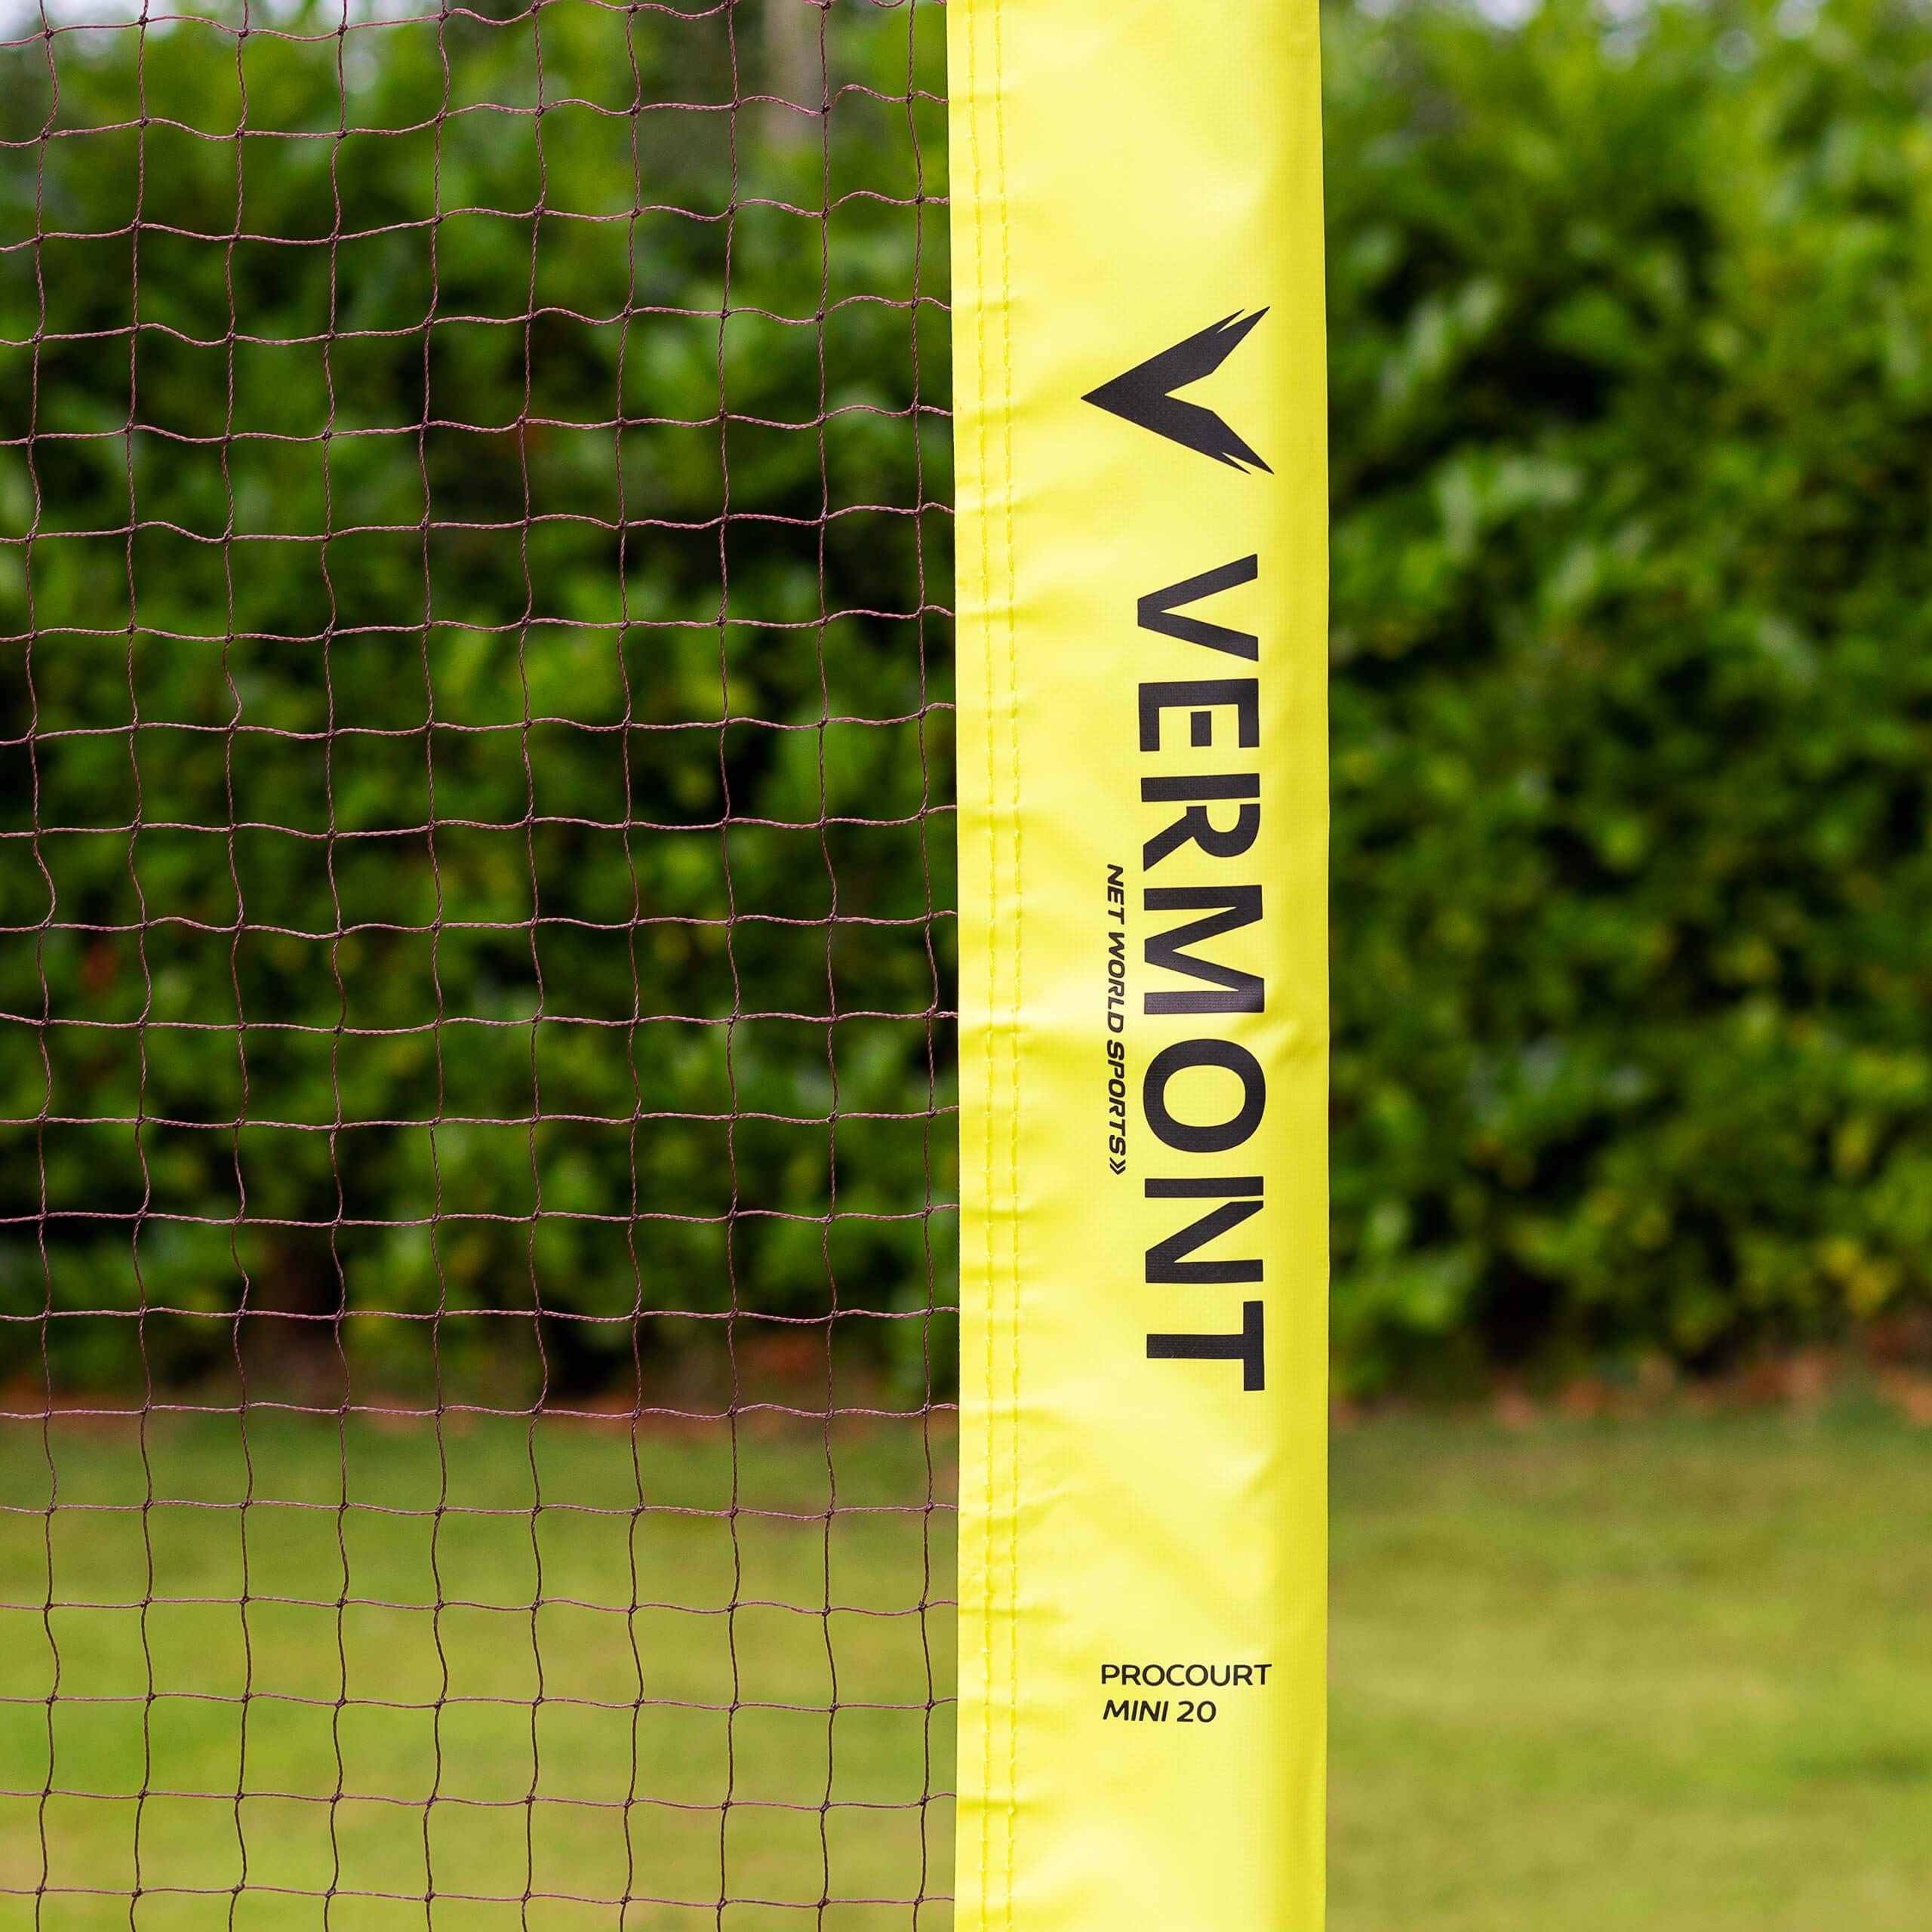 ProCourt Vermont Combi Net | Perfect for Tennis, Badminton, Pickleball, Volleyball & Soccer Tennis | Super Quick Assembly with Steel Poles | Use Indoors, Outdoors, On The Beach Or The Backyard! by ProCourt (Image #5)